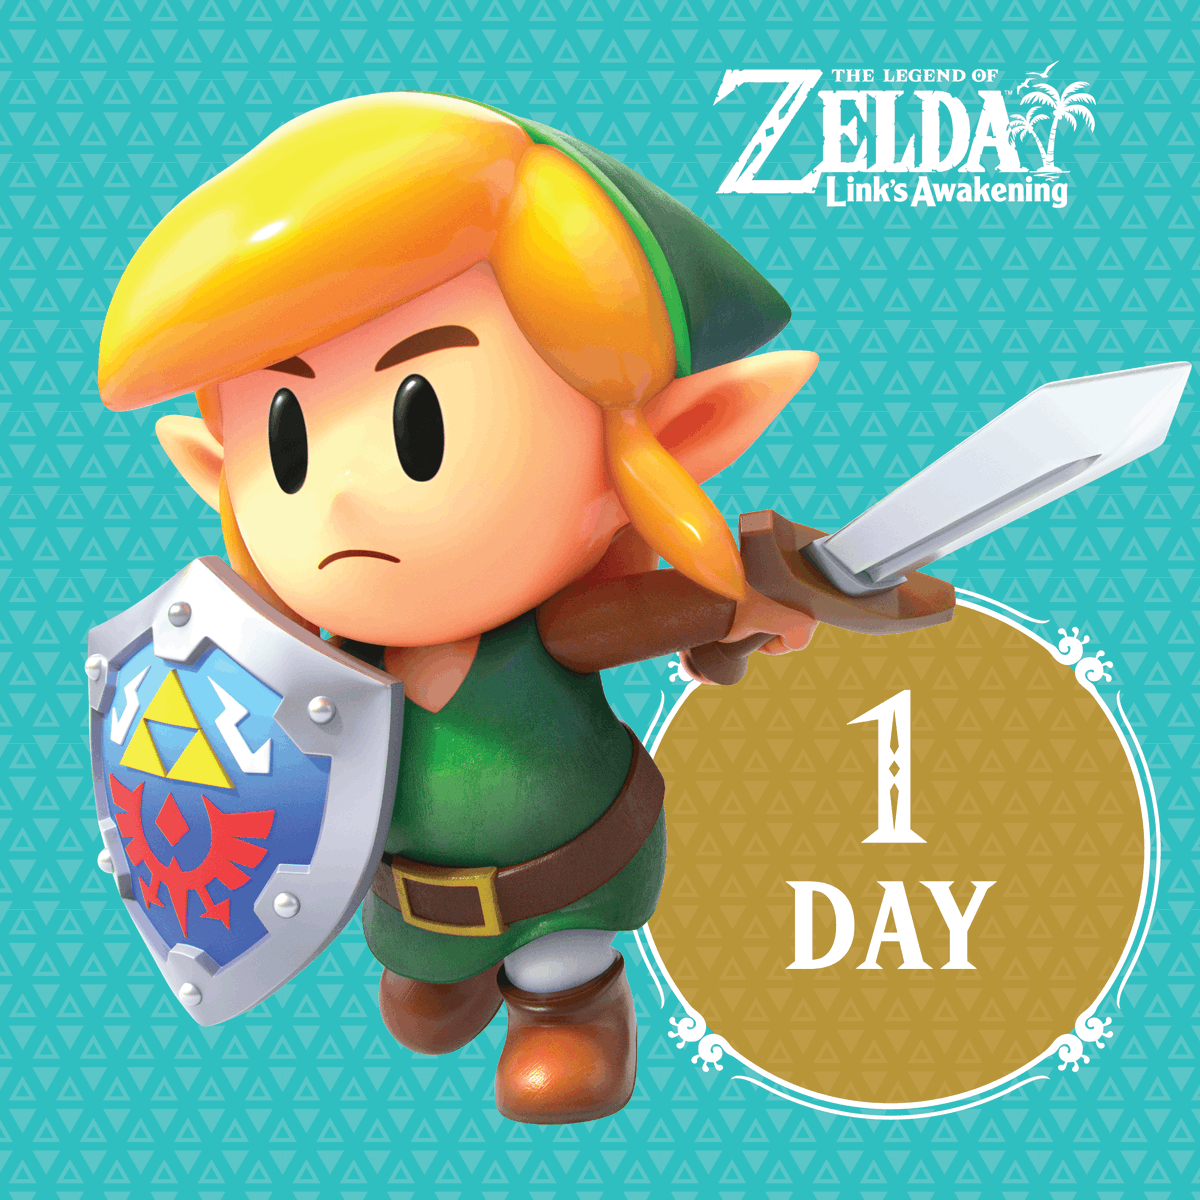 Get ready to help Link awaken the Wind Fish and uncover the truth behind Koholint Island! The Legend of #Zelda: Link's Awakening comes ashore tomorrow!Pre-purchase available now: http://bit.ly/2zs2dMP